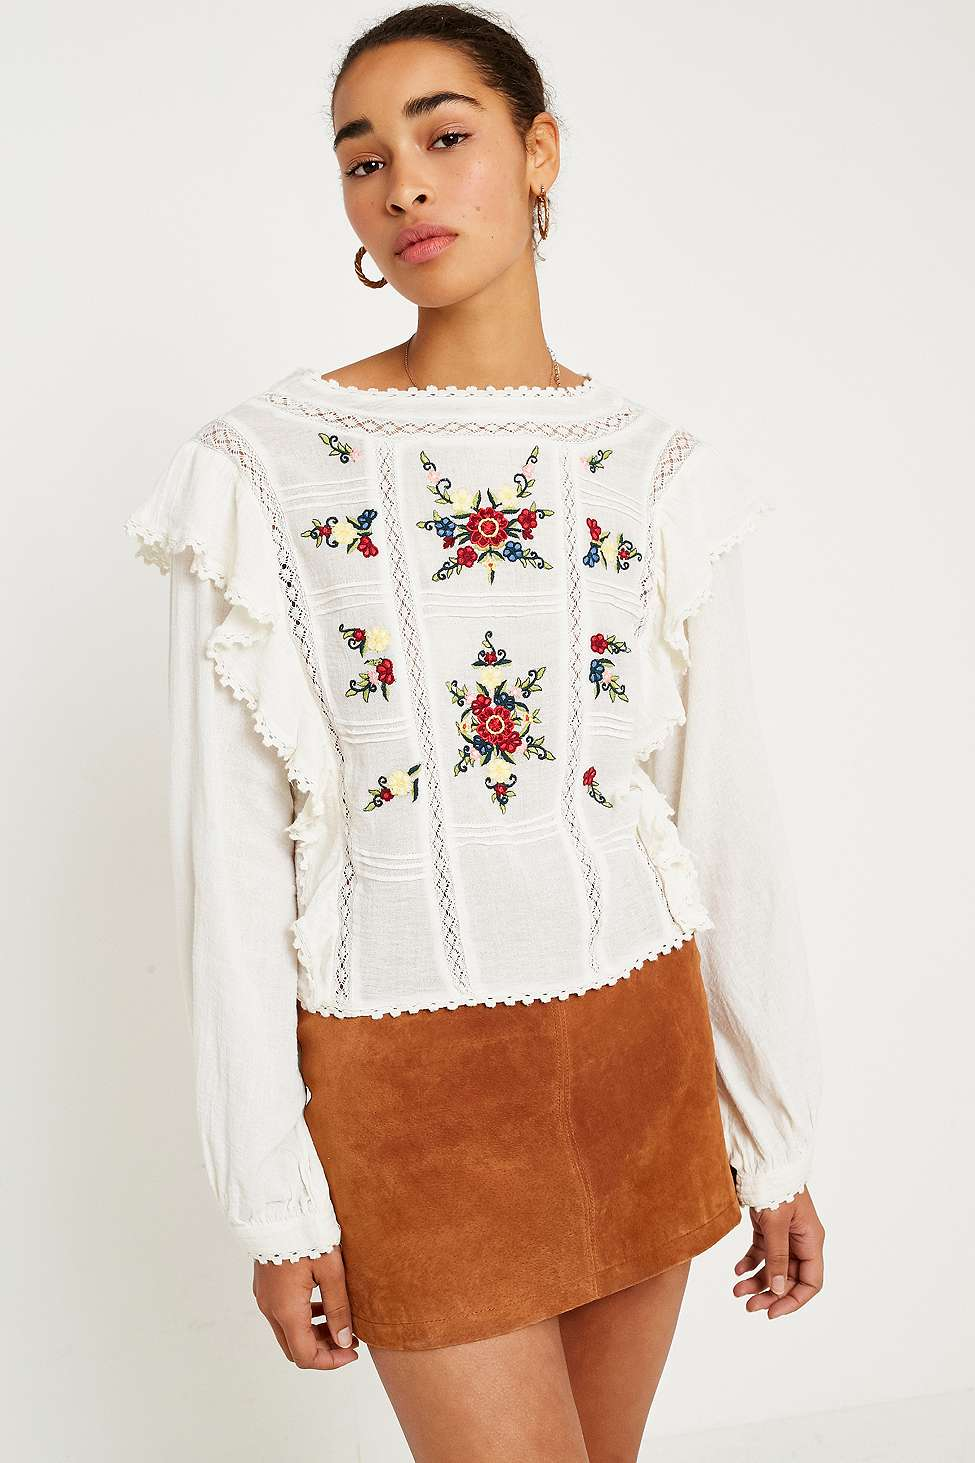 Free People Amy Floral Embroidered Top, Cream